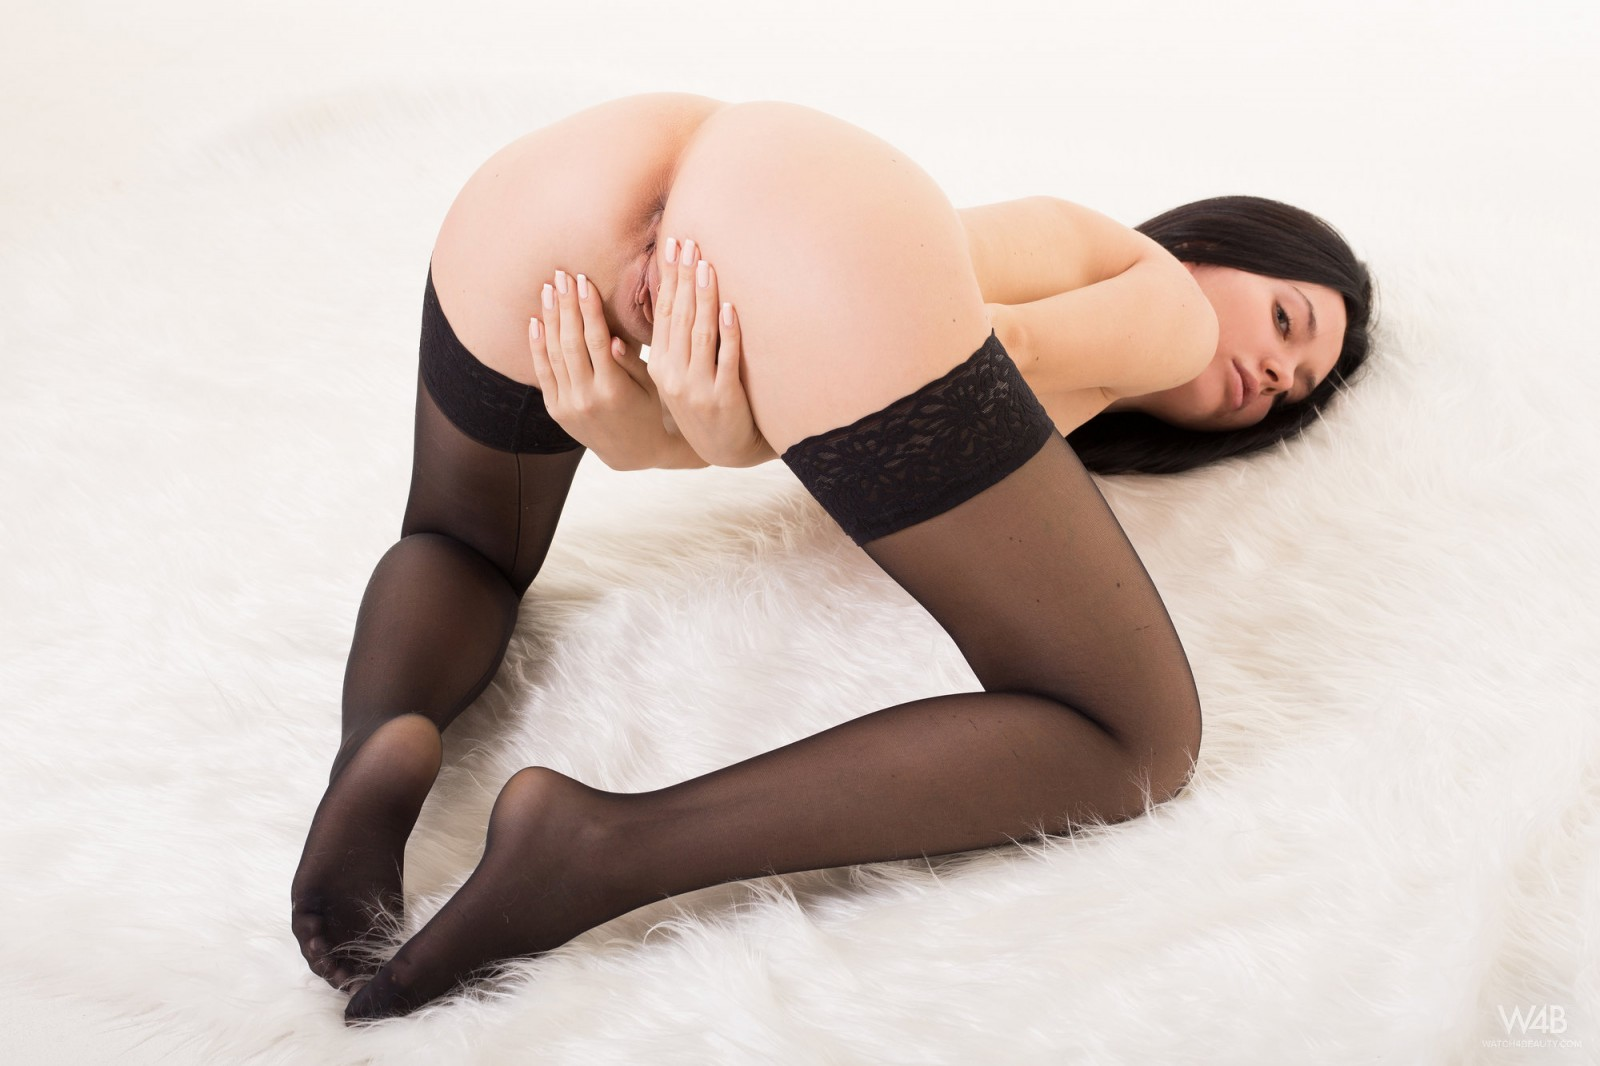 nude girls in thigh highs